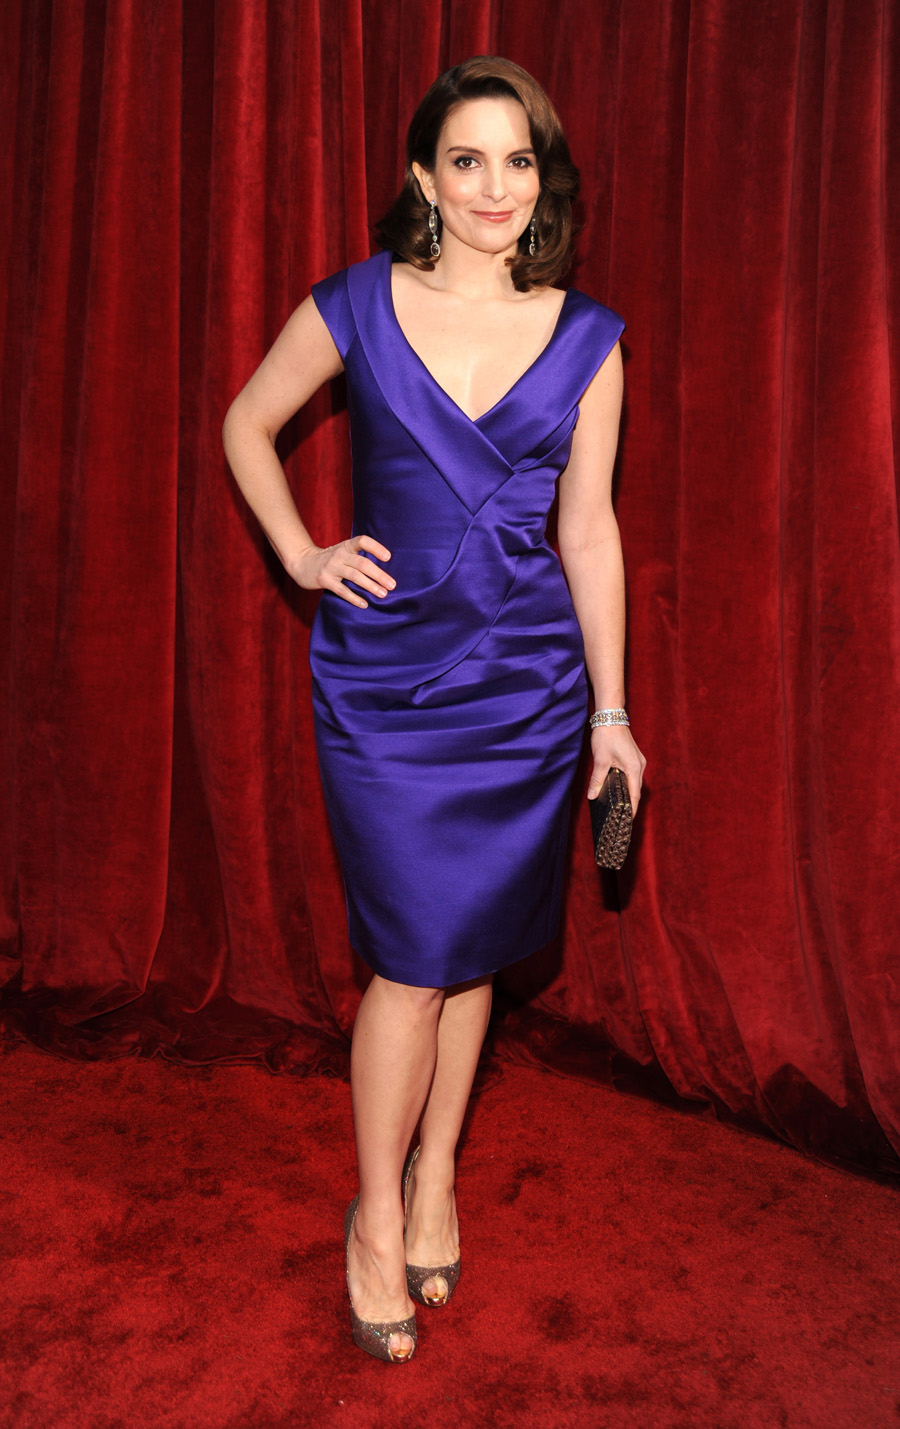 LOS ANGELES, Jan 23, 2010 - Tina Fey at the Screen Actors Guild Award. Tina was wardrobed by Salvatore Ferragamo